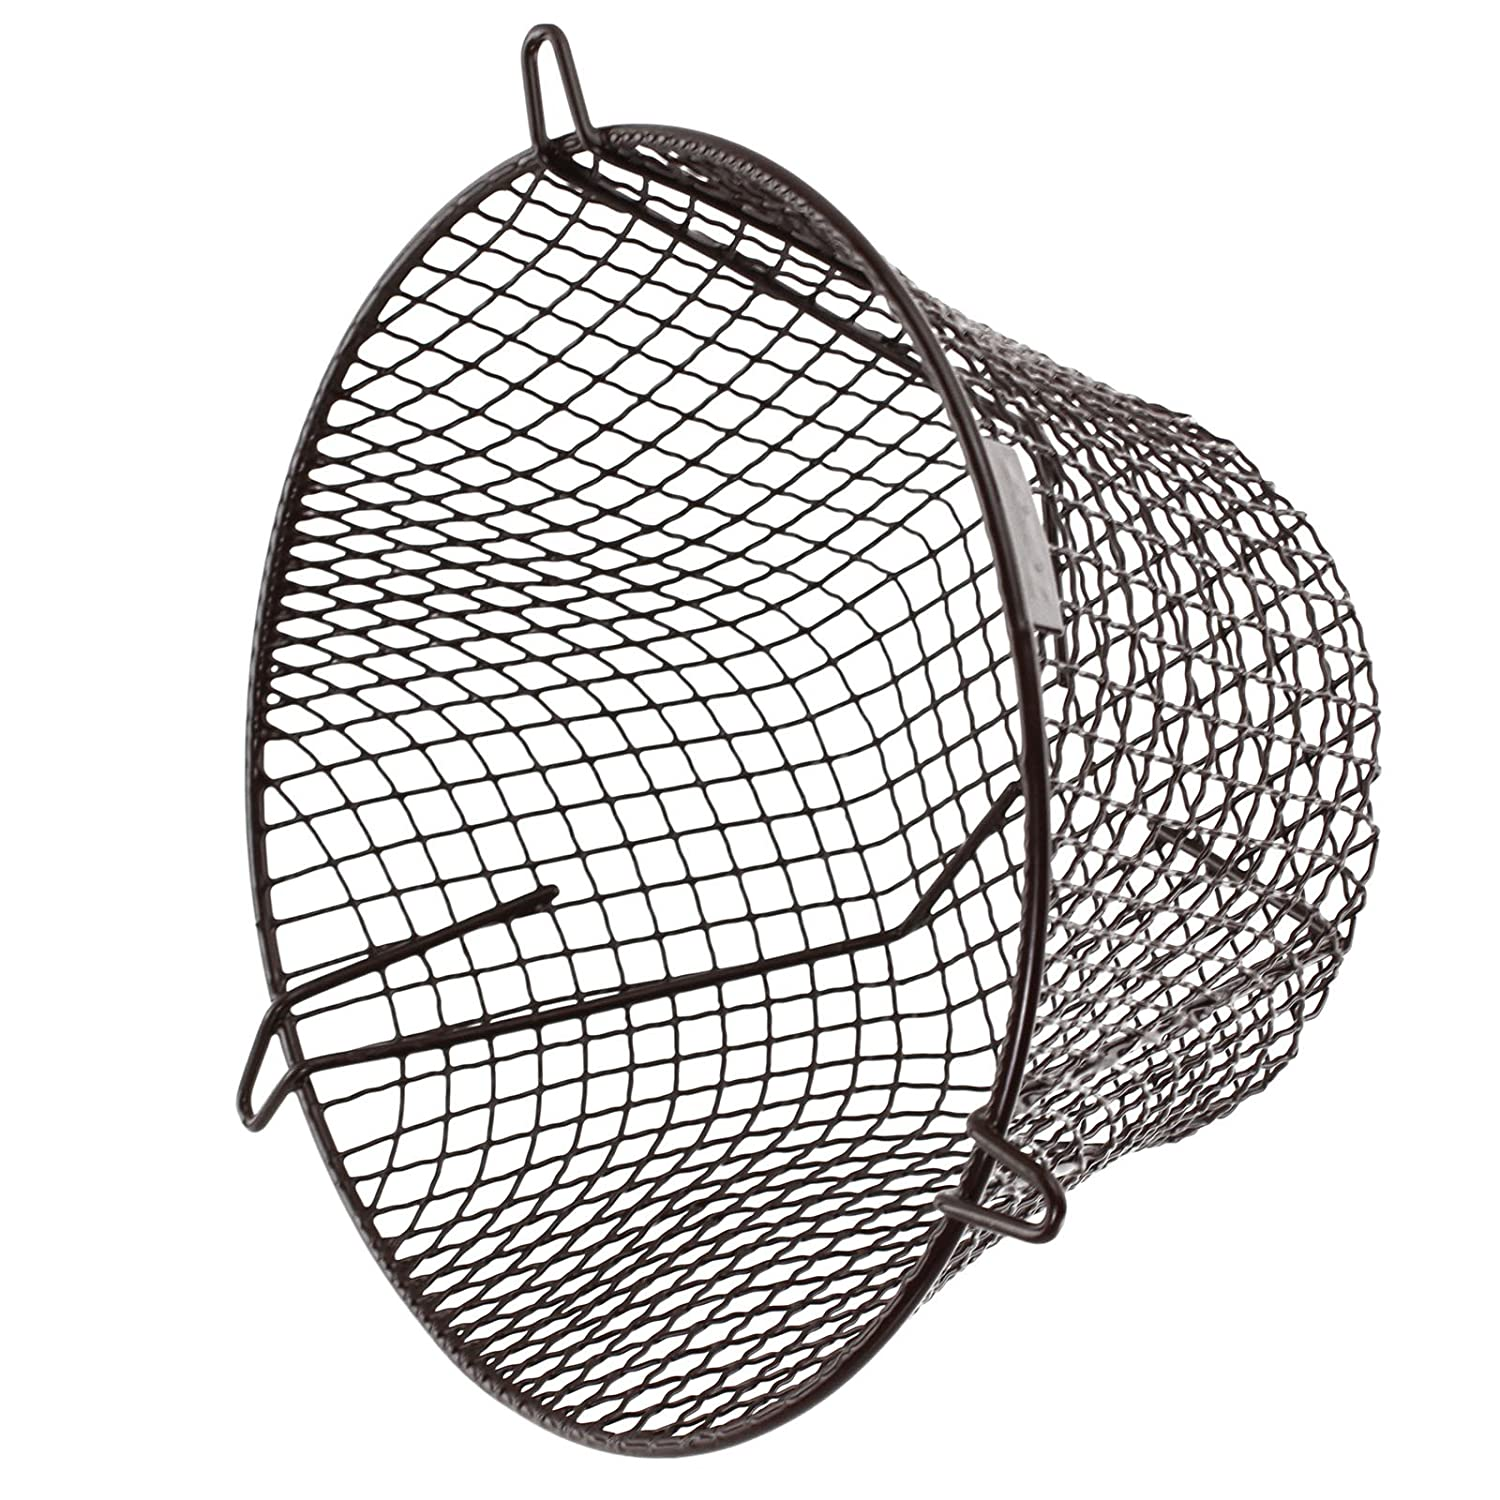 SPARES2GO Universal Plastic Coated Terminal Guard Round Boiler Flue Cage (11''/280mm)